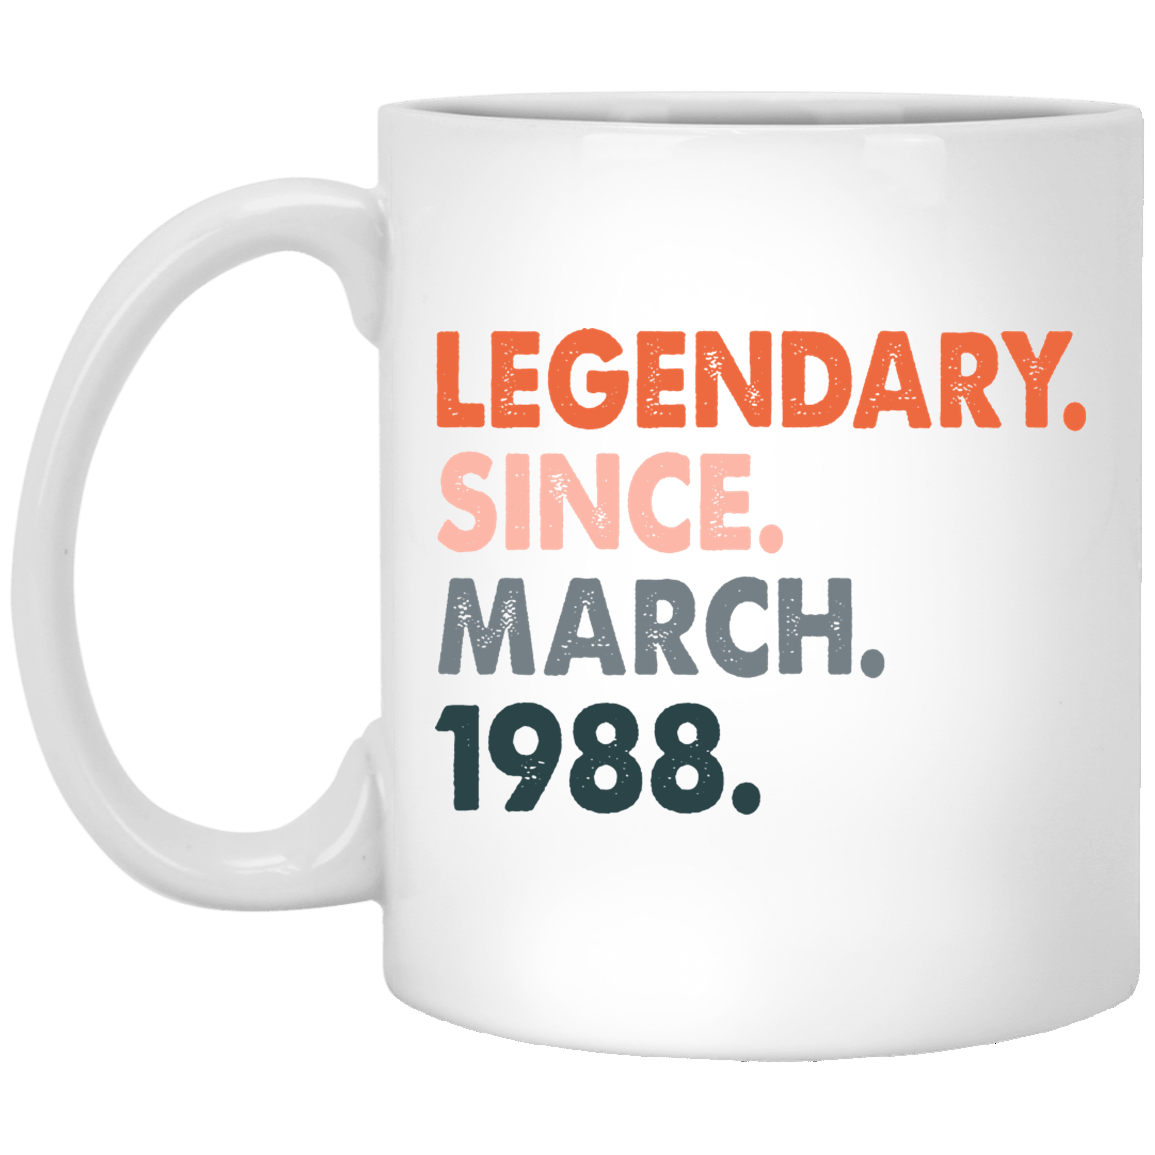 33rd-Birthday-Ideas-for-Women-and-Men-Legendary-Since-March-1988 Funny Quotes Coffee Mug 99promocode